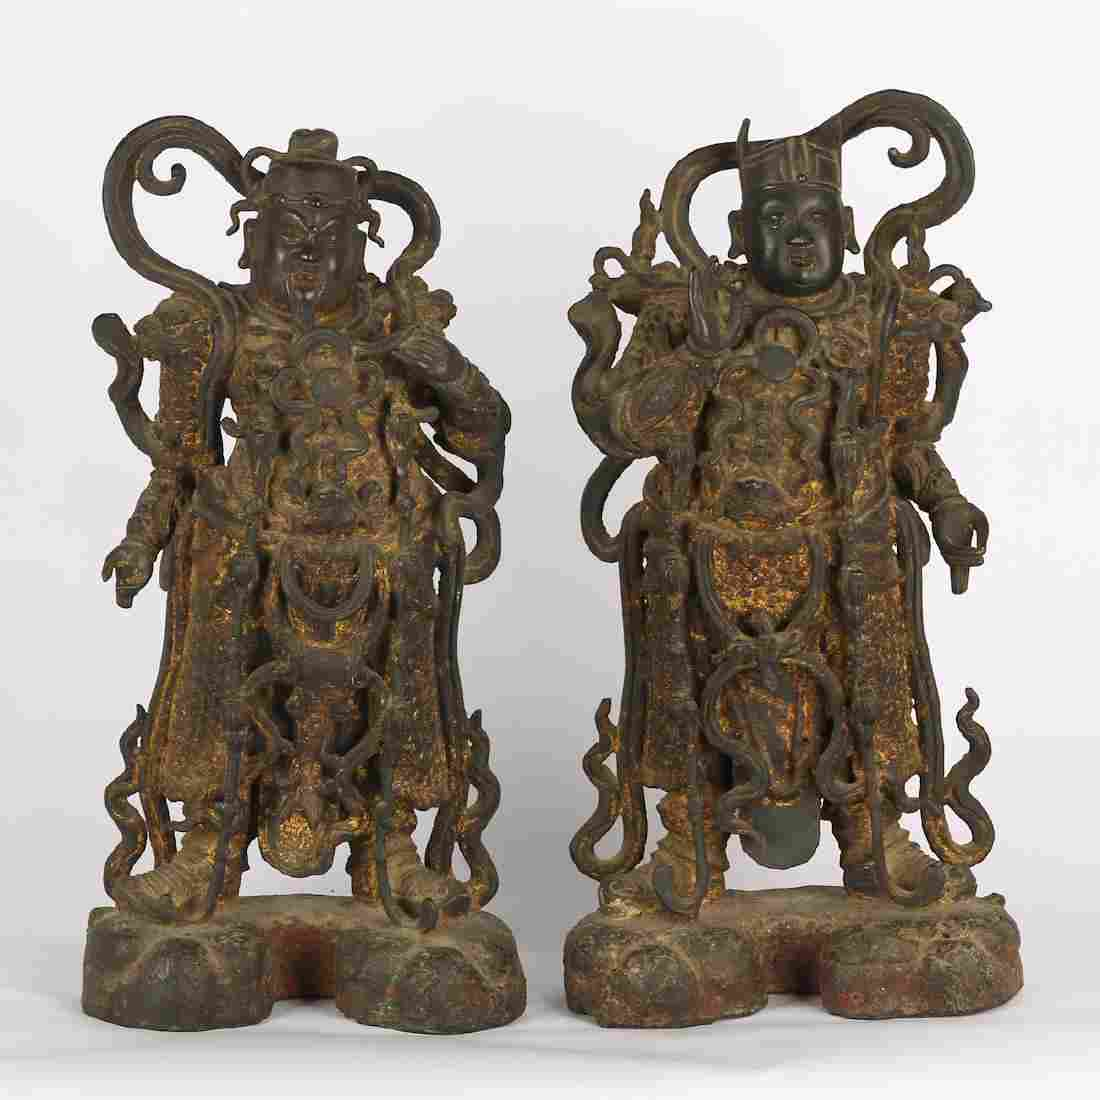 CHINESE PAIR BRONZE FIGURE OF GUARDIAN, MING DYNASTY